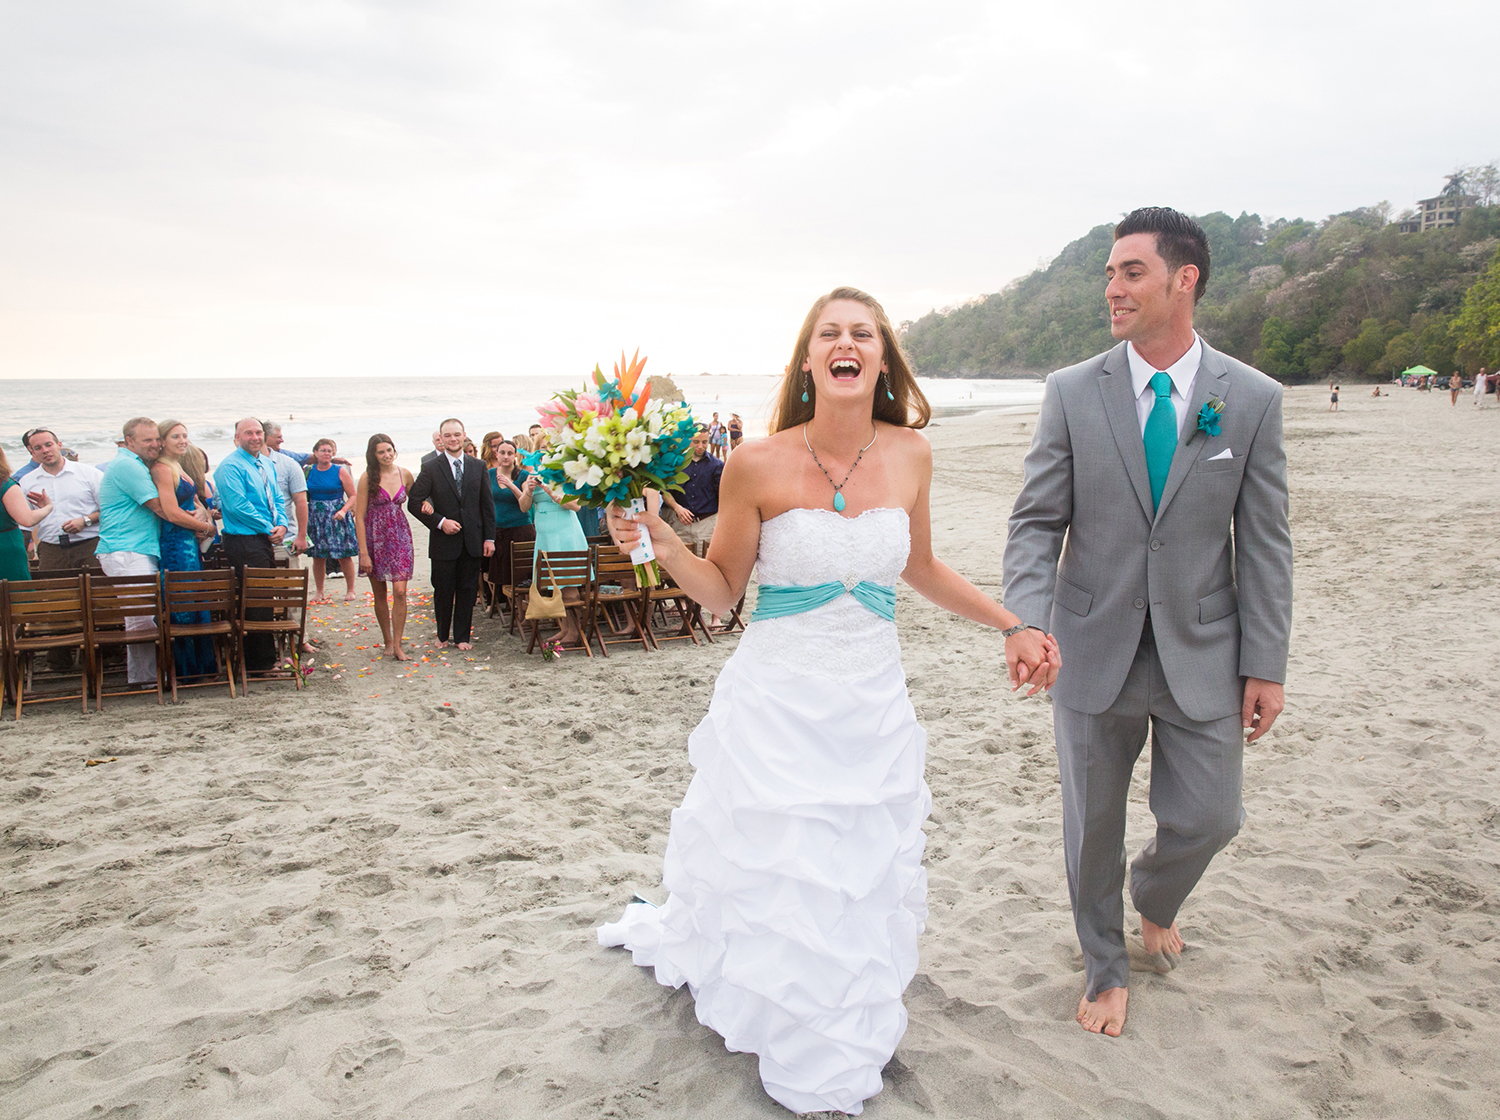 CostaRica_BeachWedding_MichelleGirardPhotography02.jpg